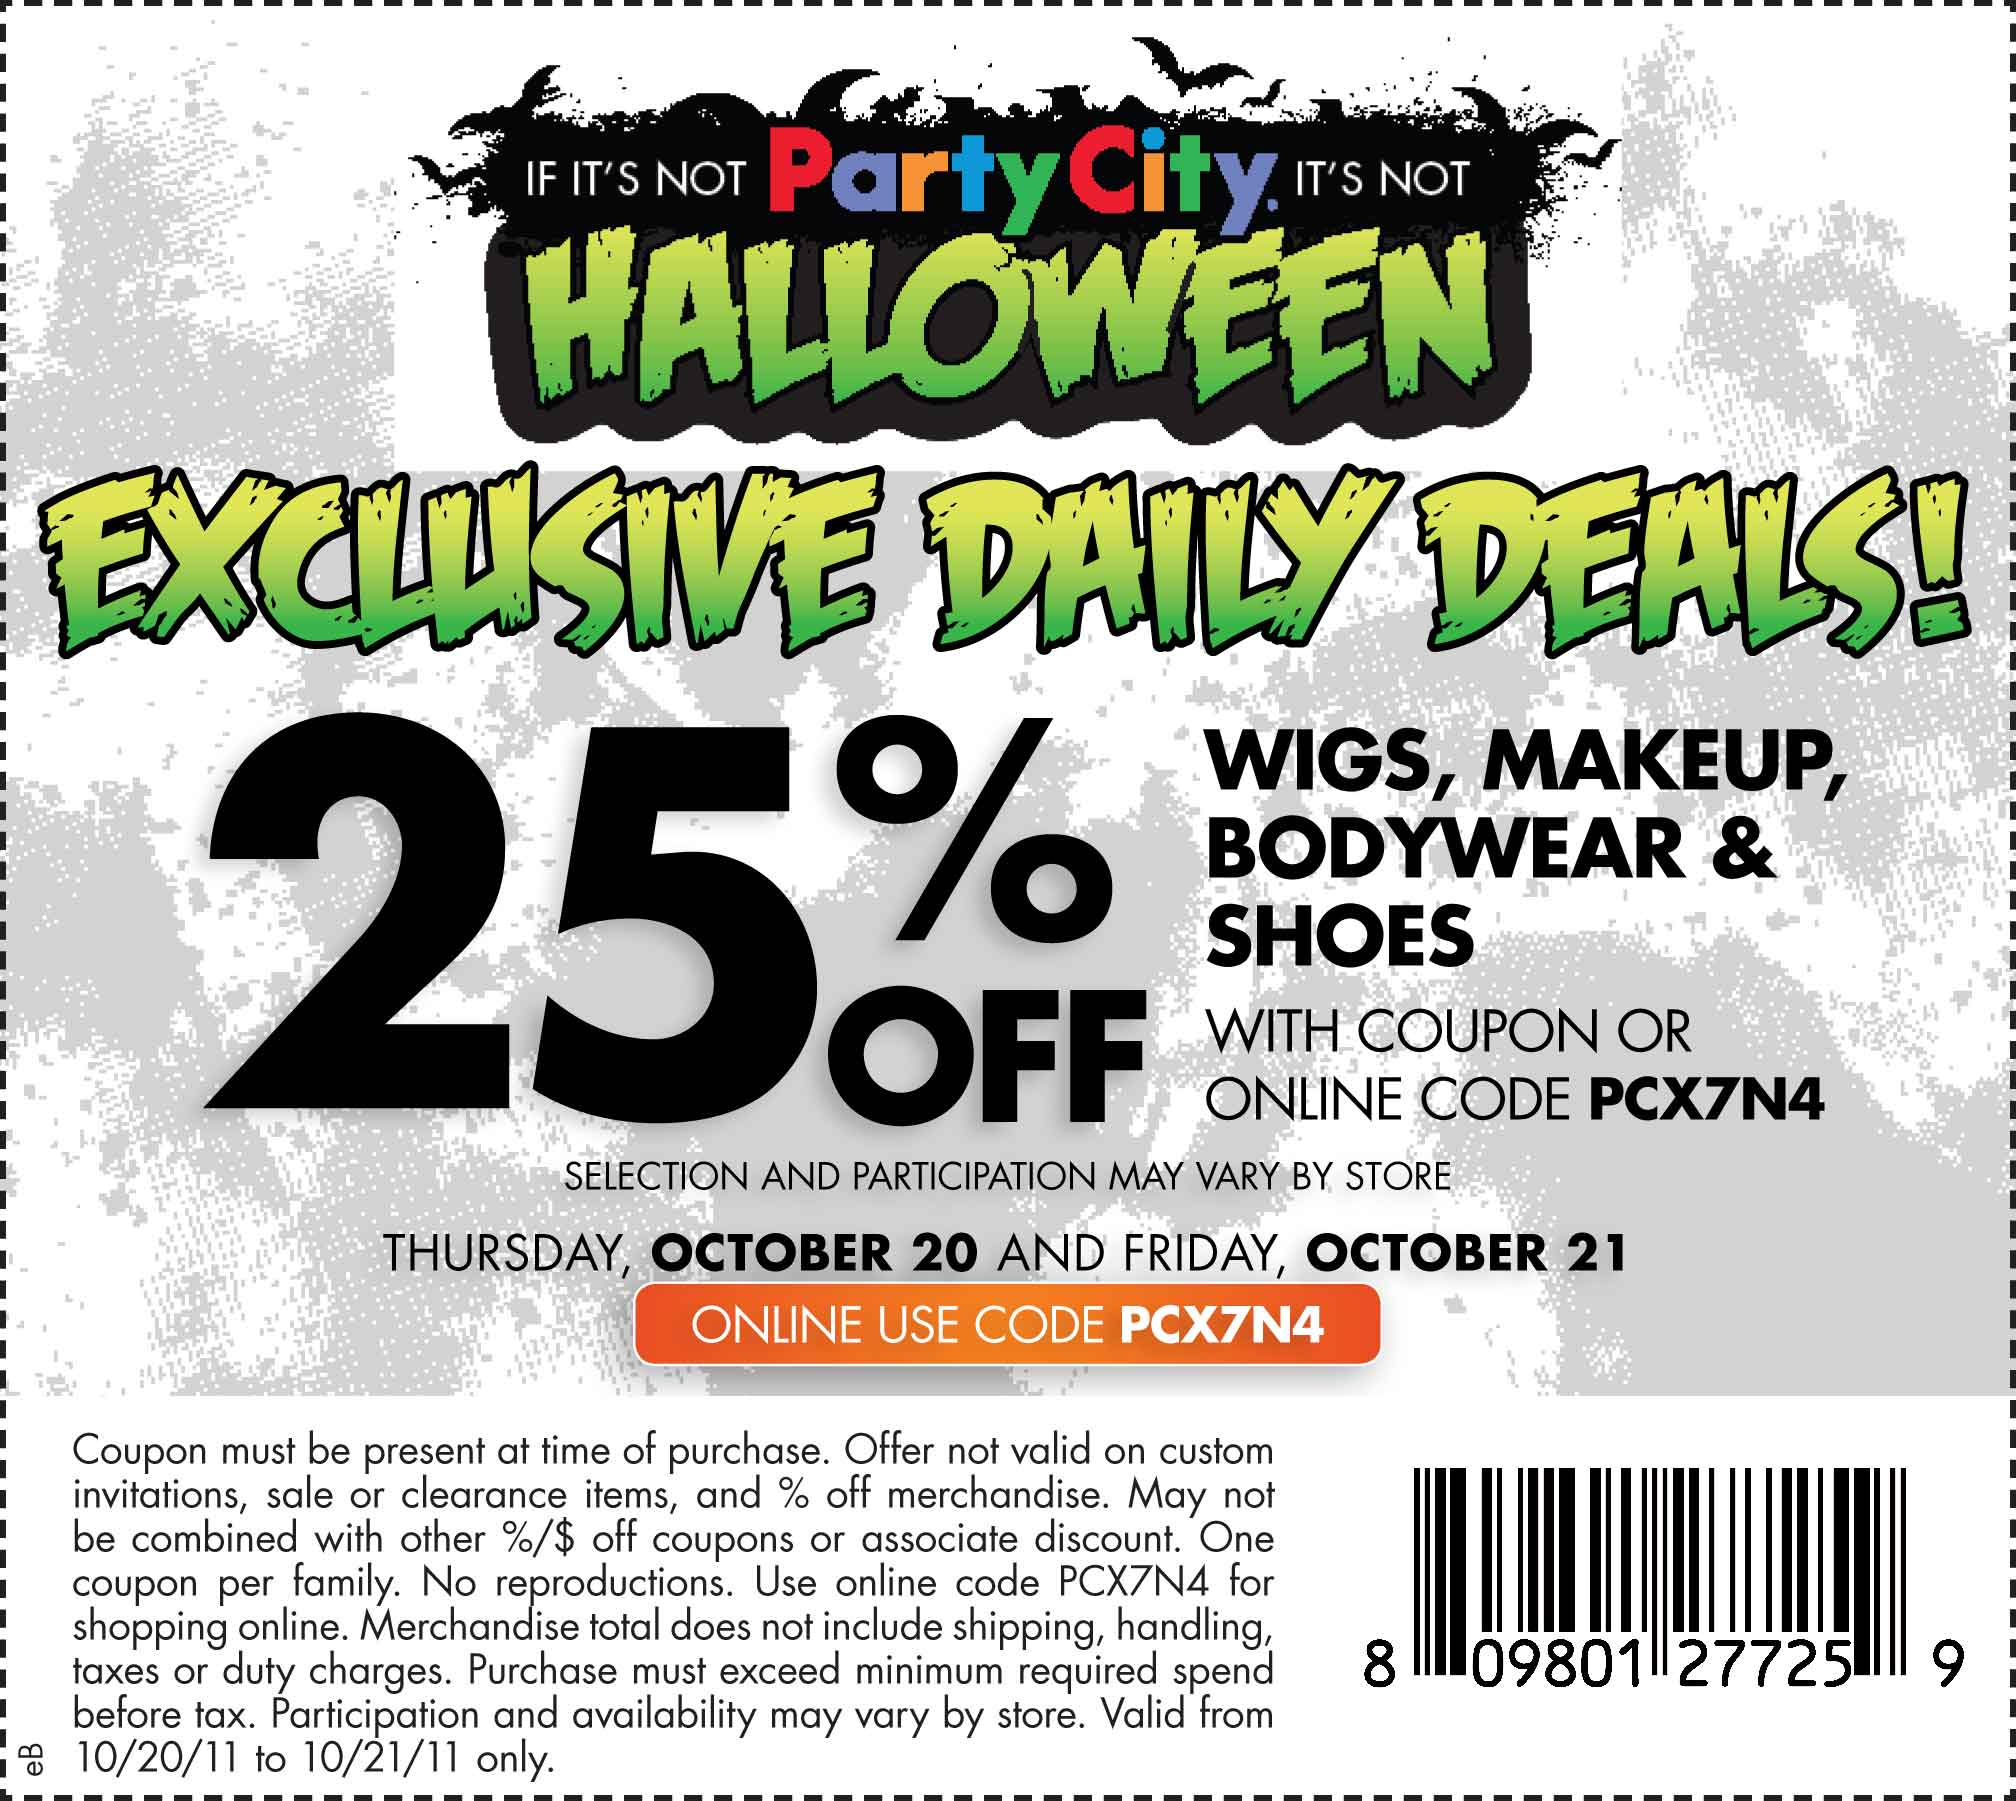 new printable u2013 save 15 off costumes halloween coupons part city and Spirits (1)  sc 1 st  Printable Coupons & new printable u2013 save 15 off costumes halloween coupons part city and ...